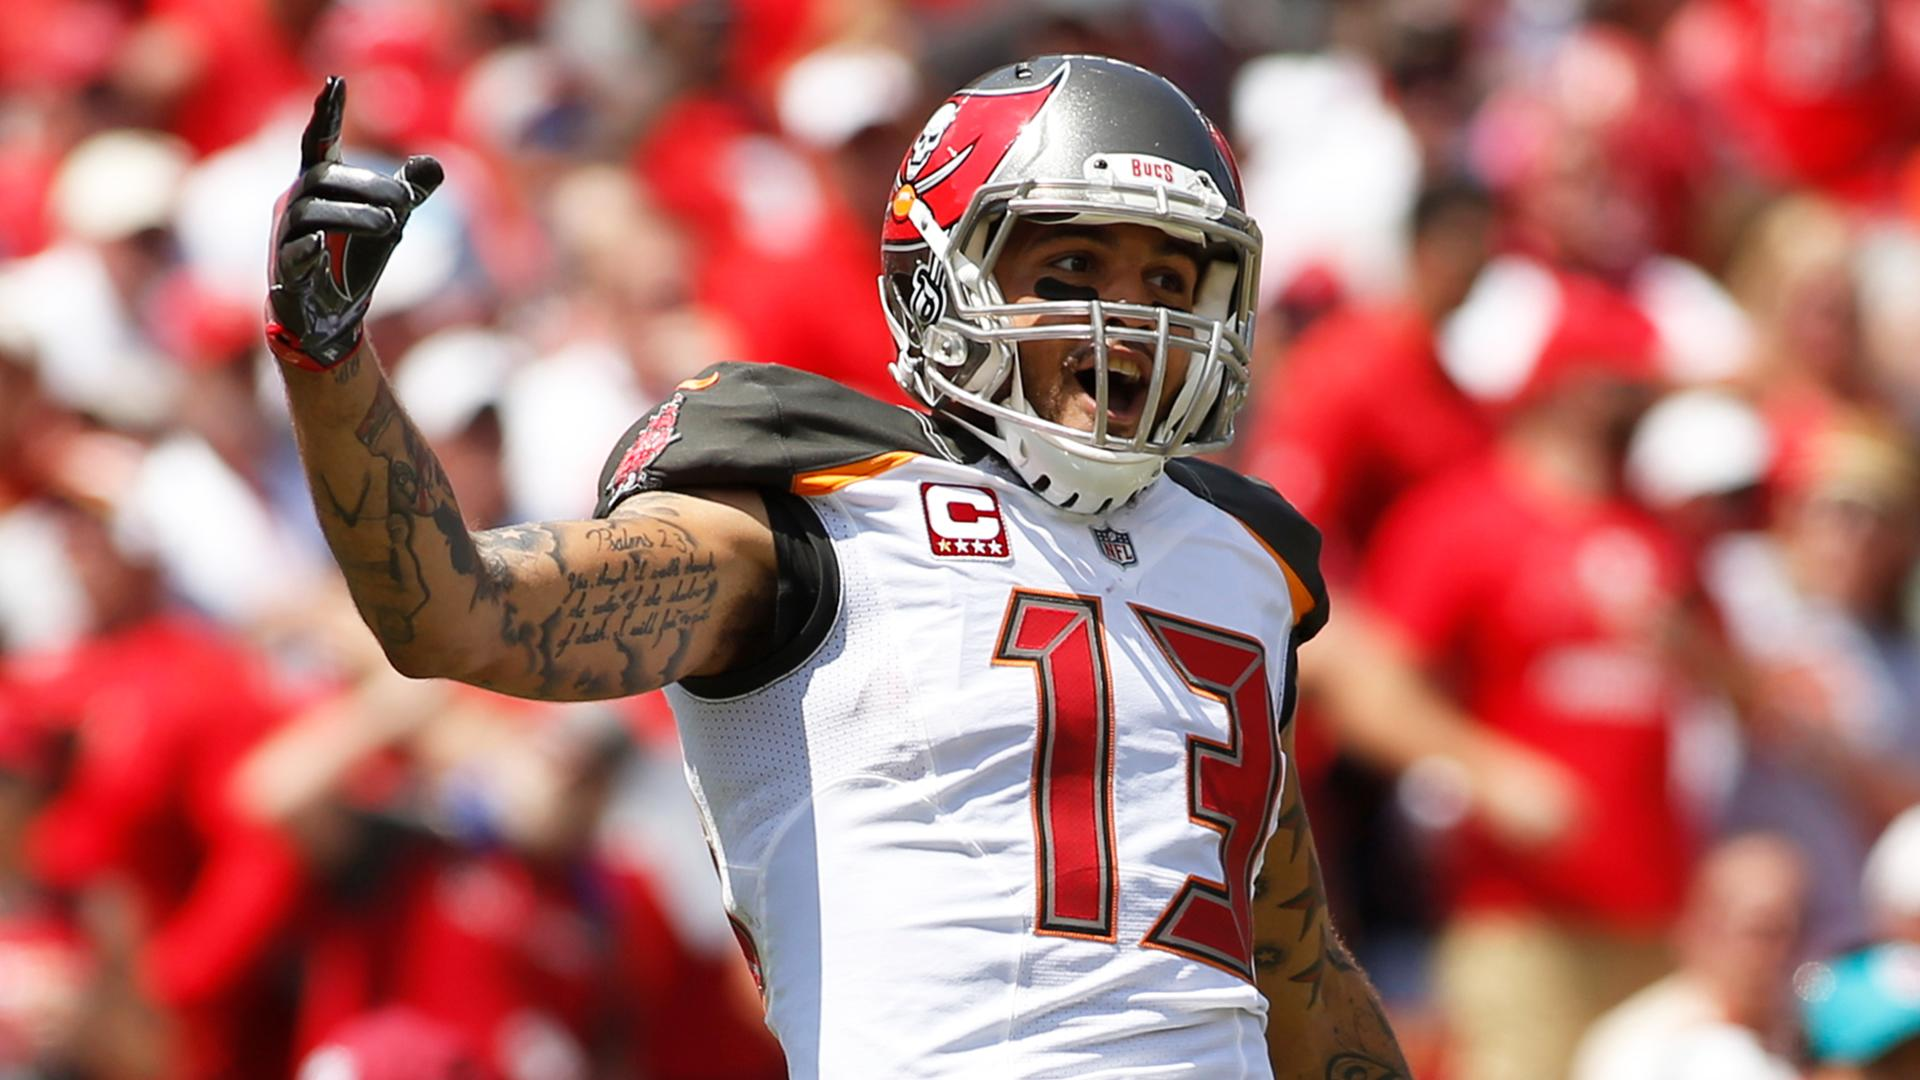 Mike Evans Jay Ajayi among players to watch in Week 11